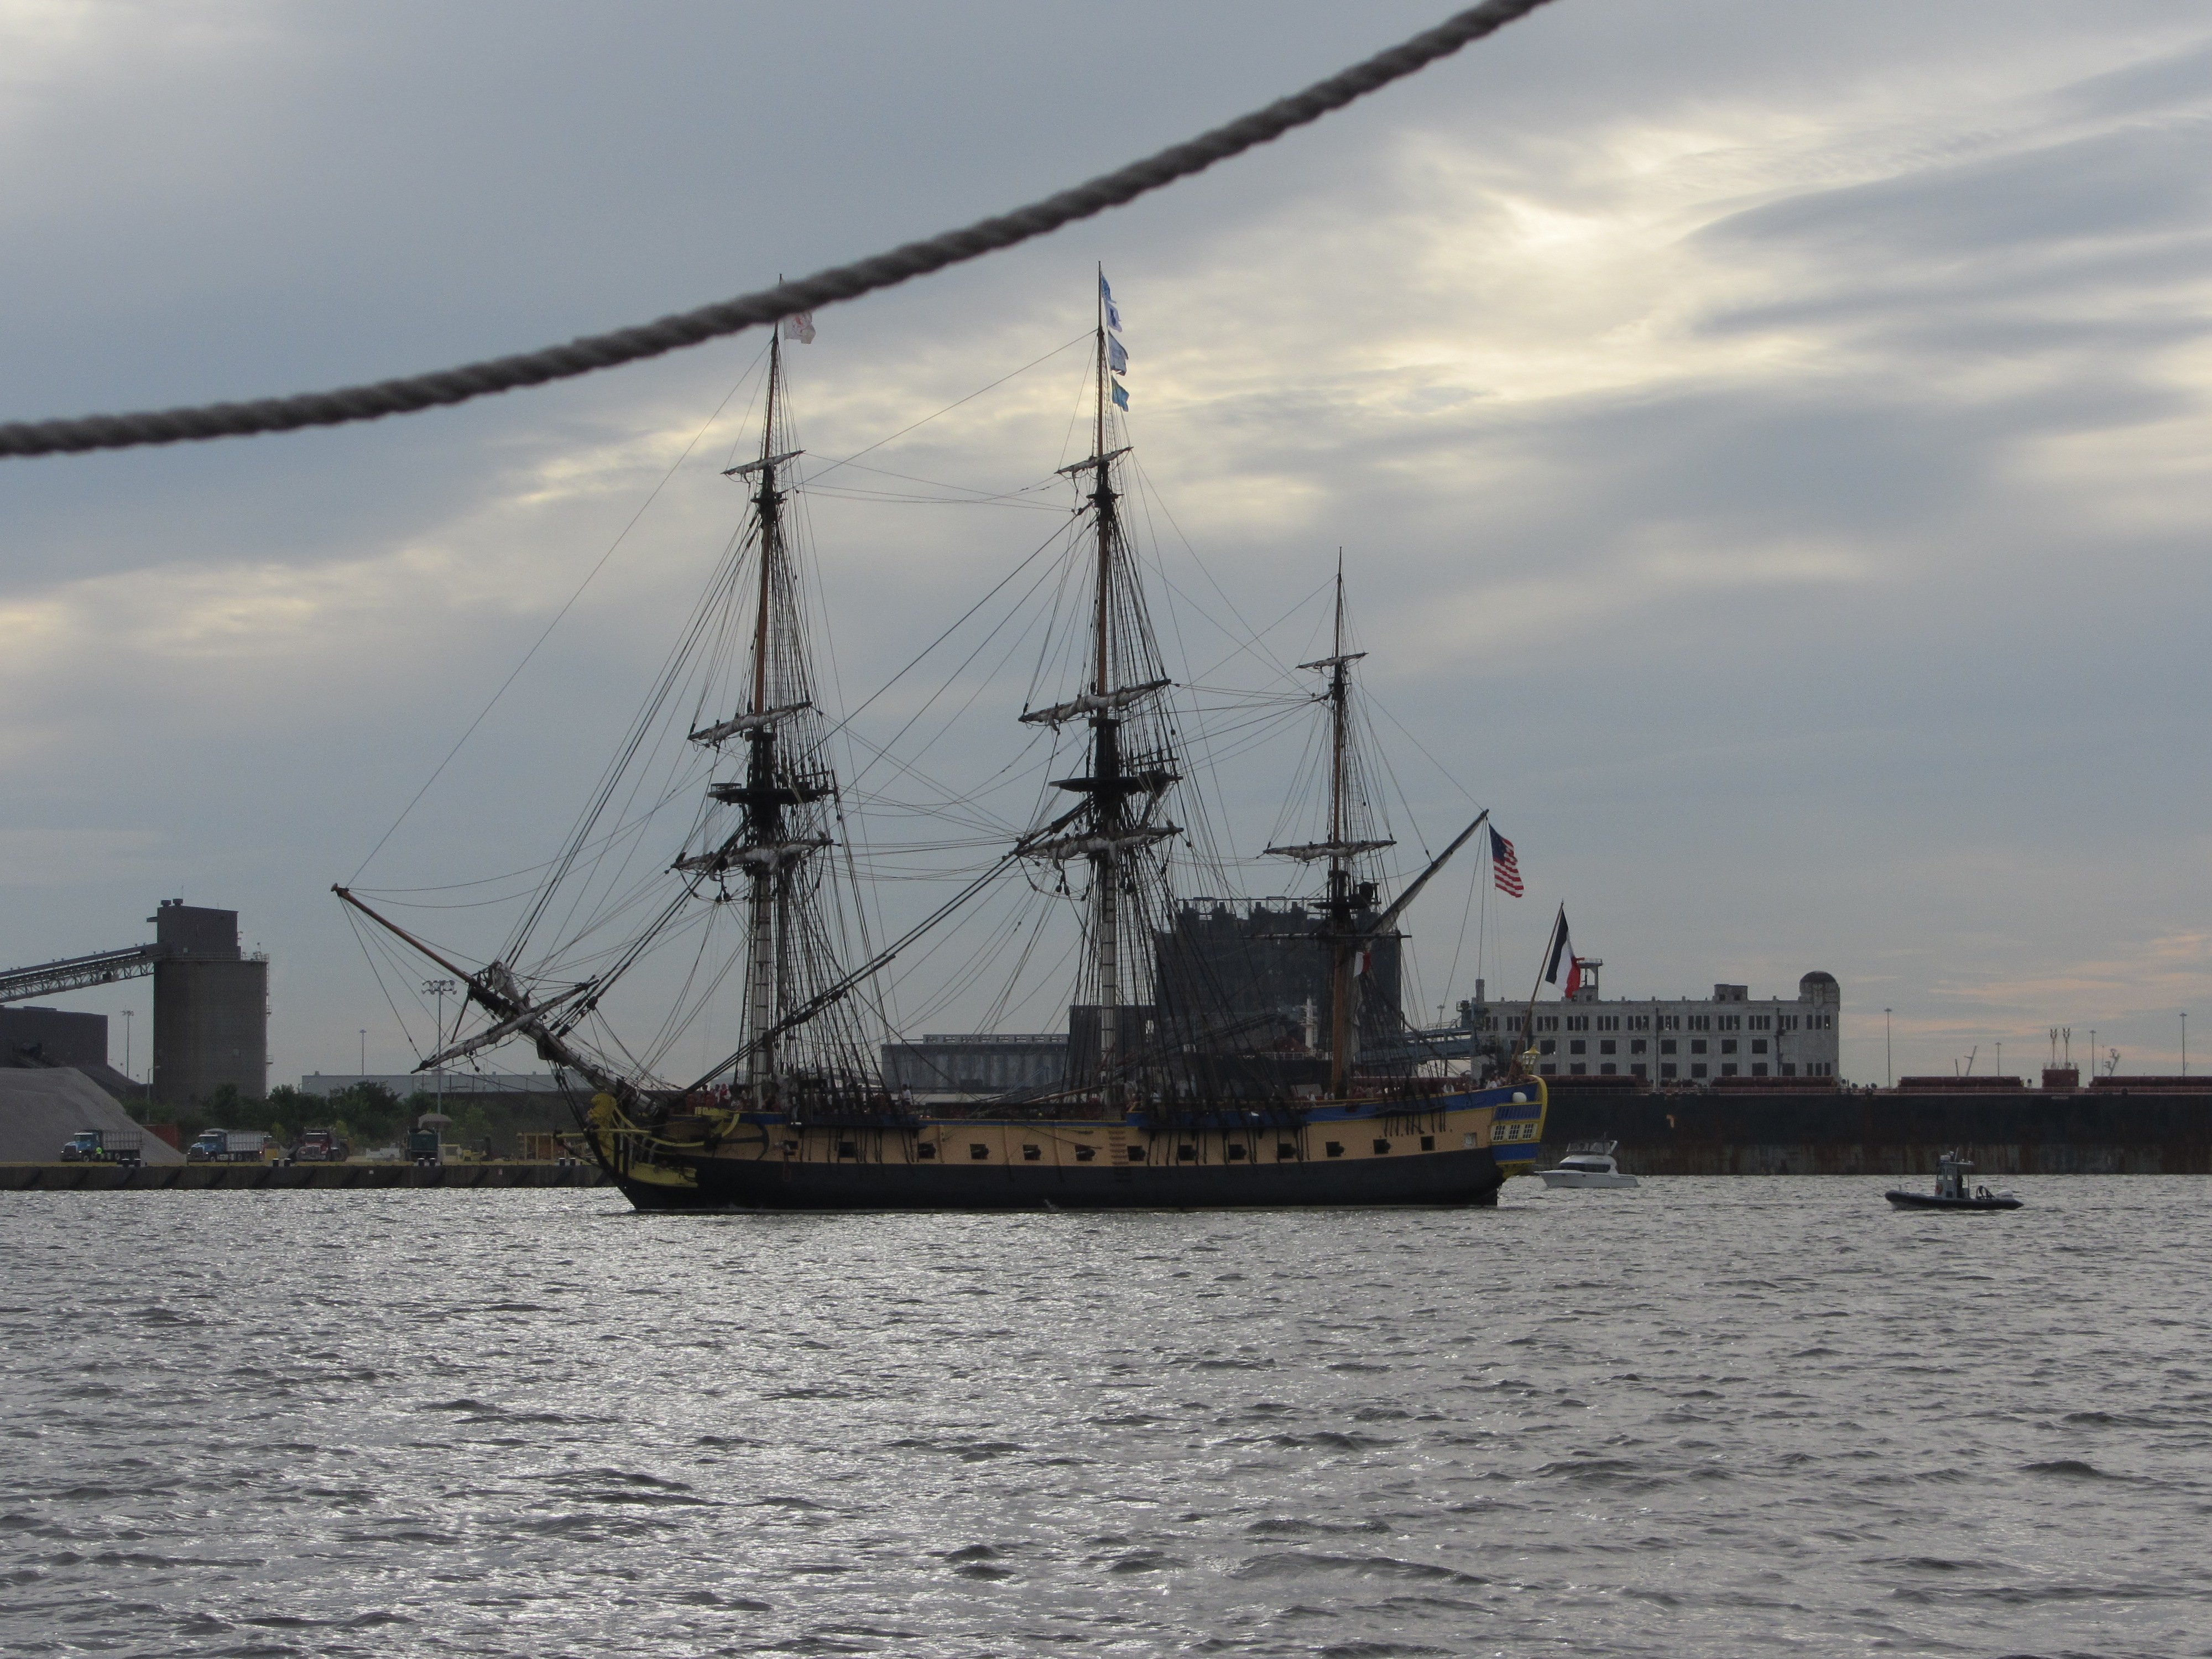 The replica of French frigate Hermione sails towards Baltimore's Inner Harbor. USNI News photo.